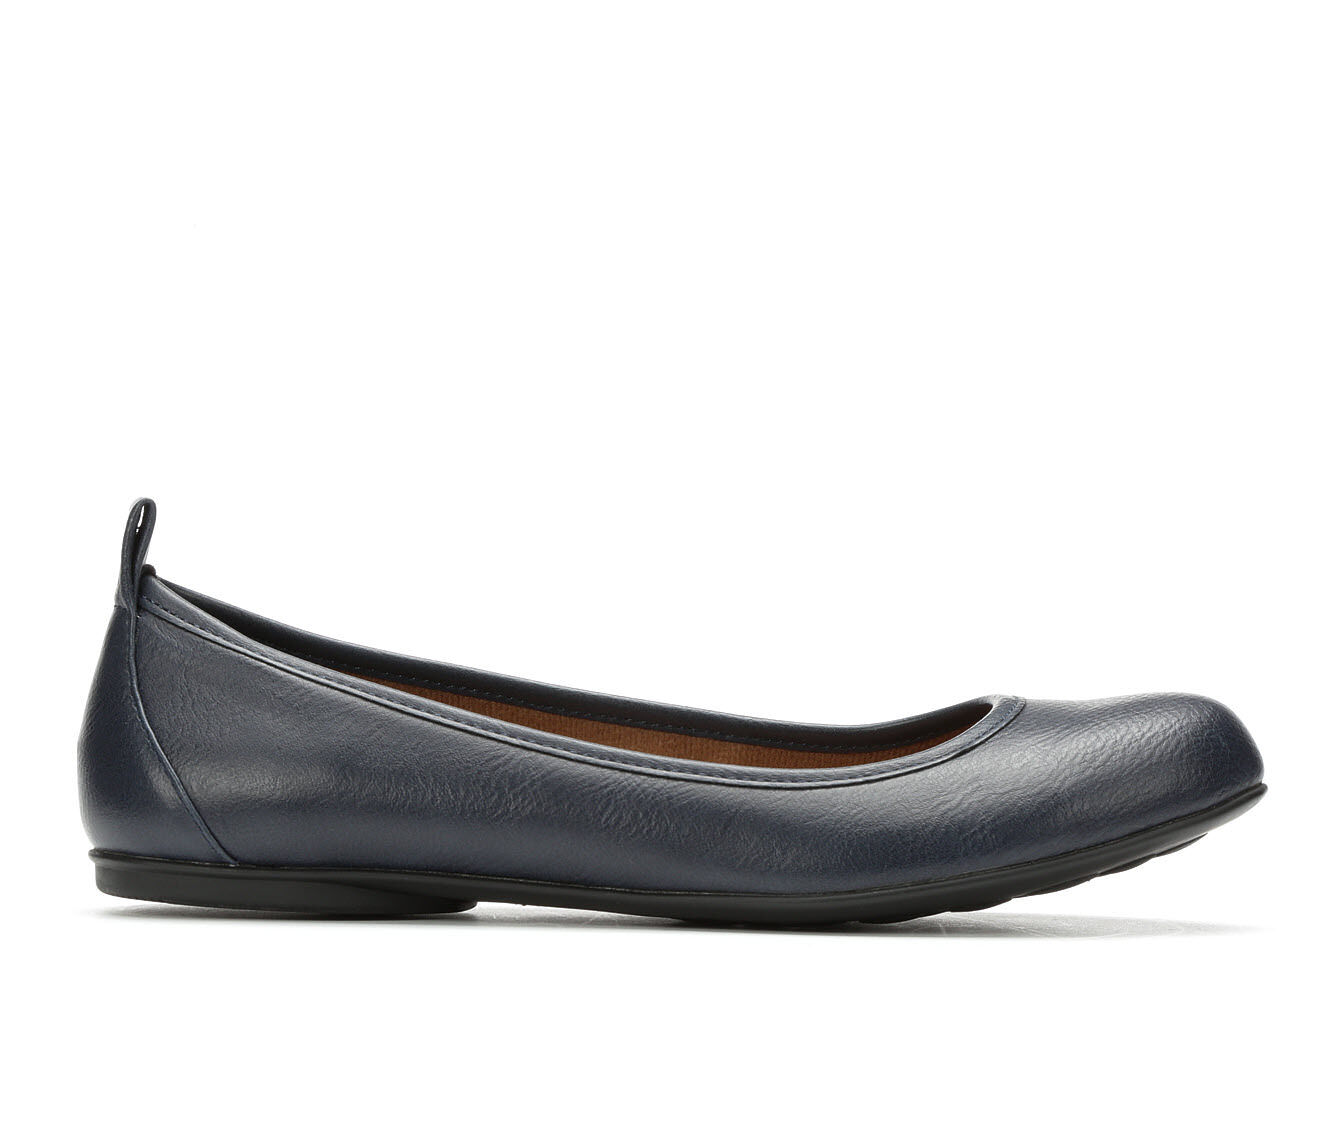 purchase new arrivals Women's Vintage 7 Eight Emma Flats Navy